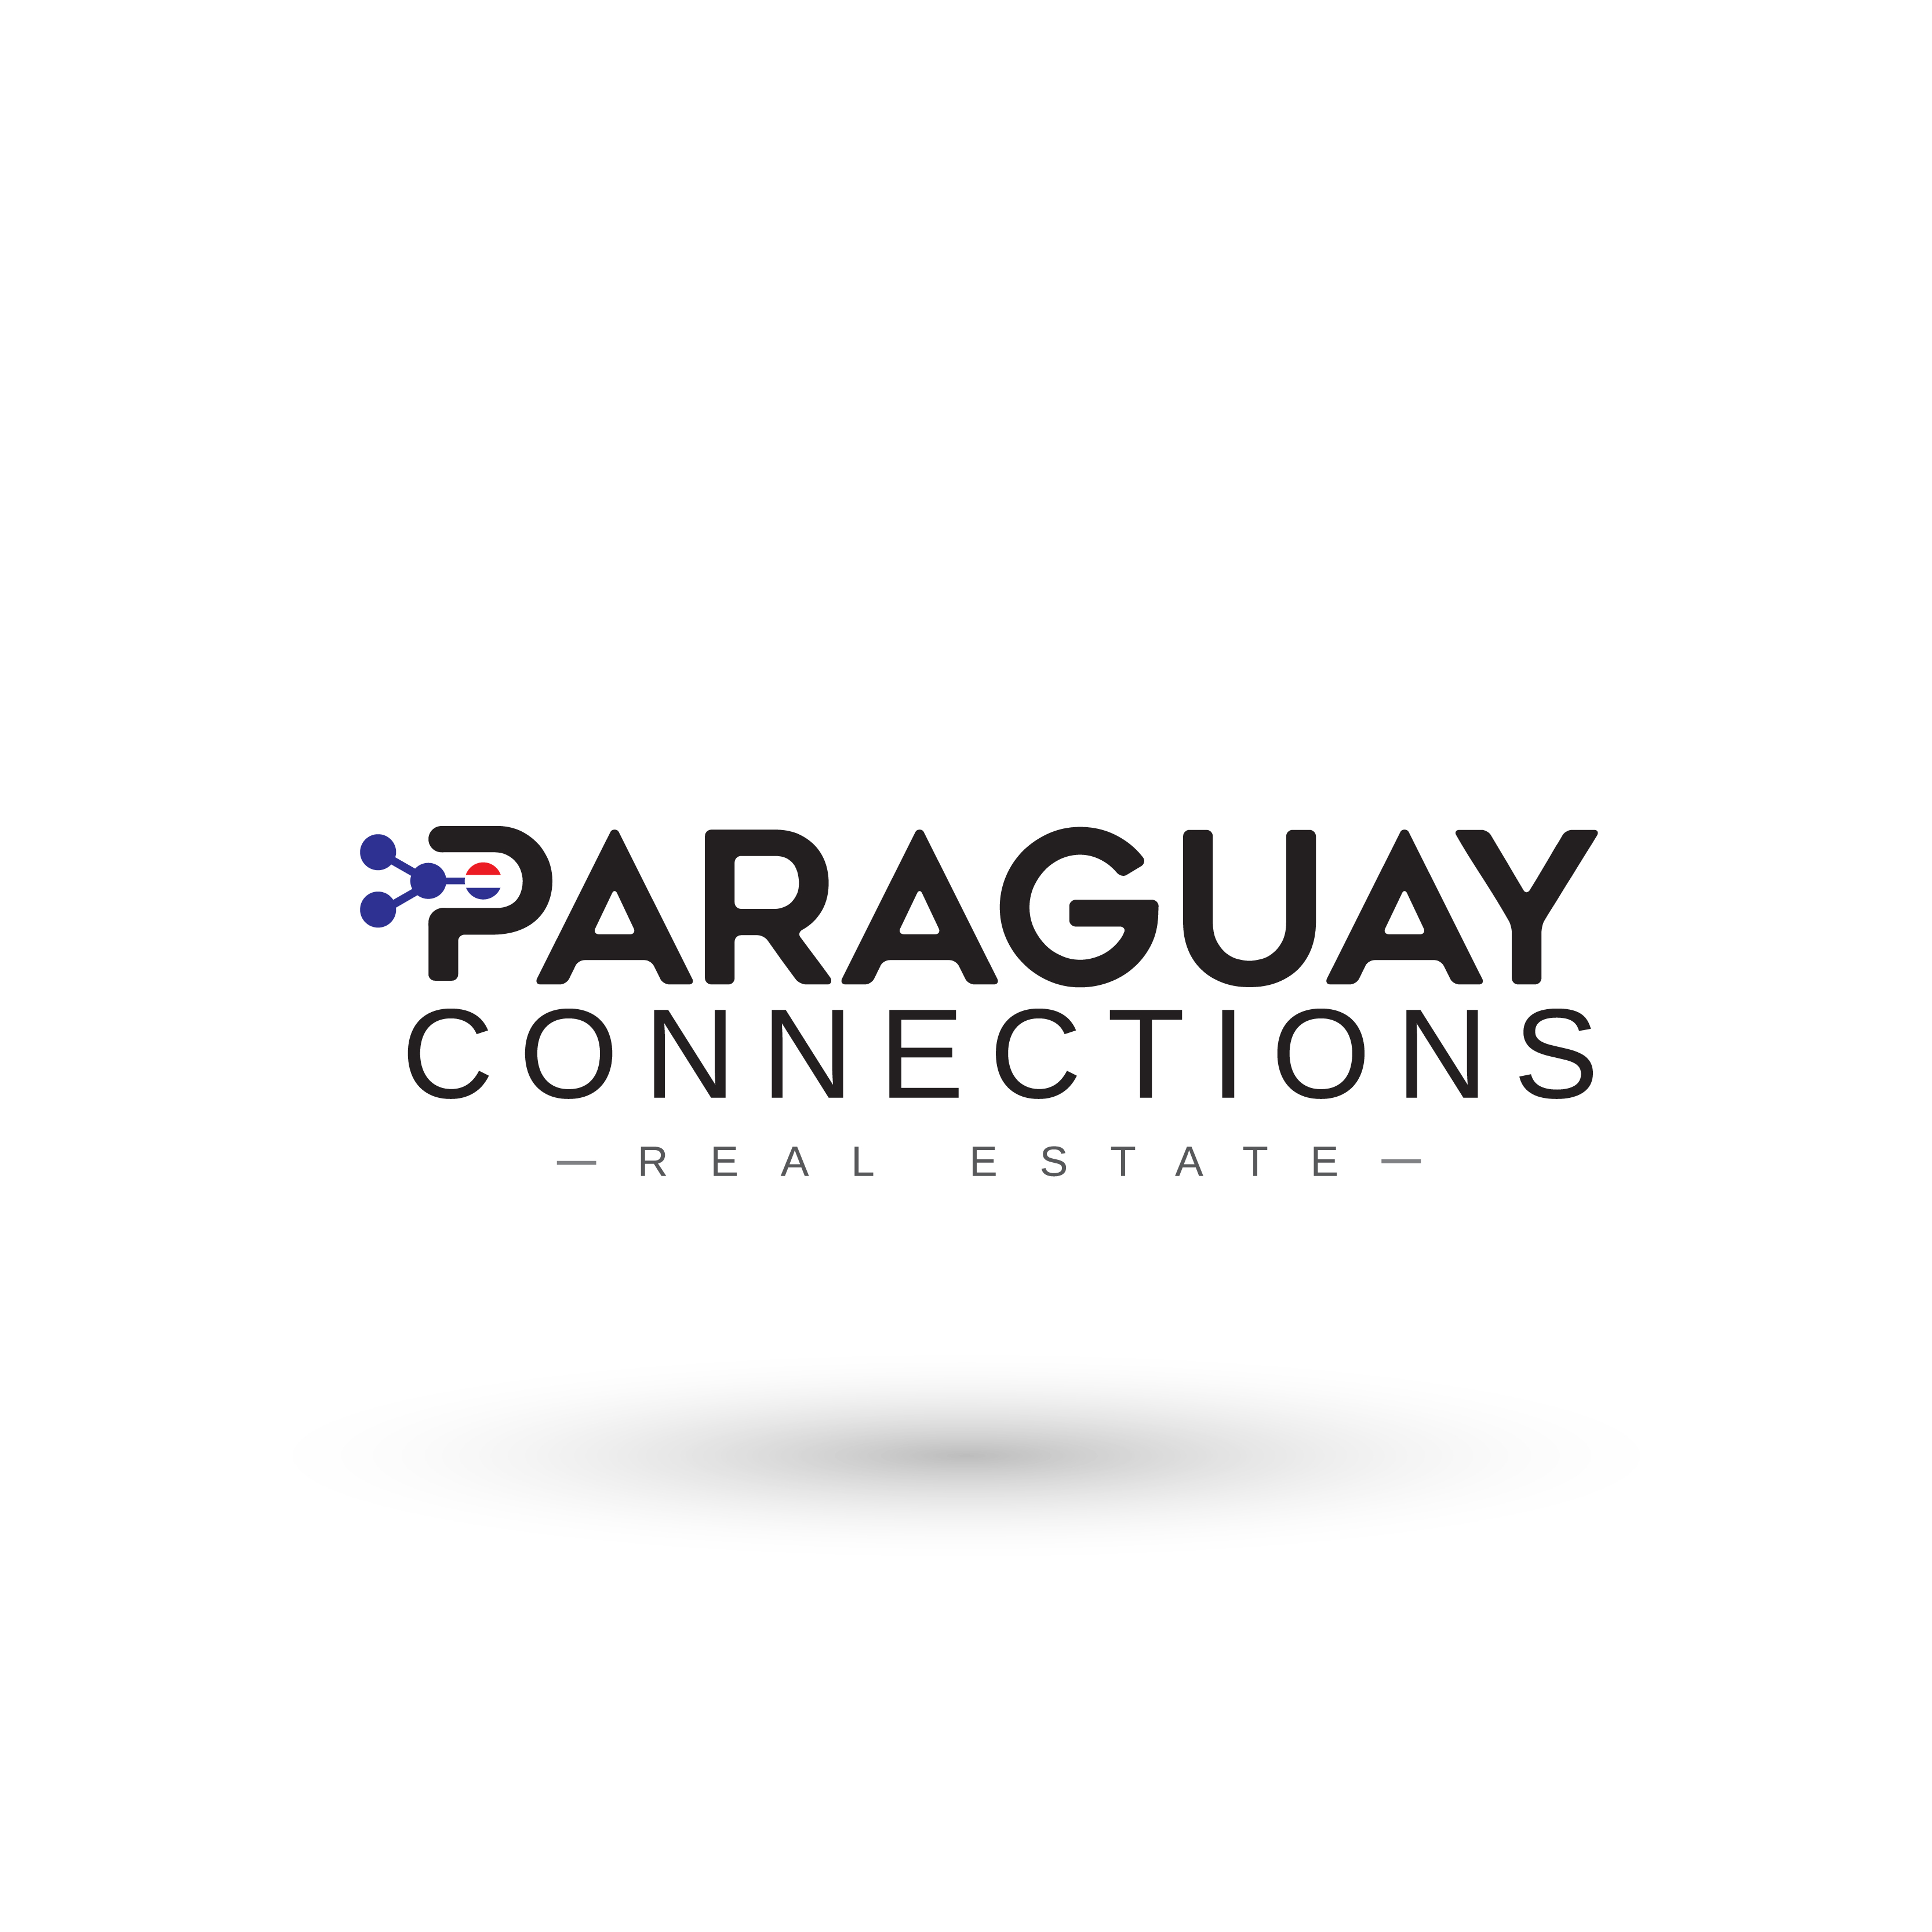 Paraguay Connections